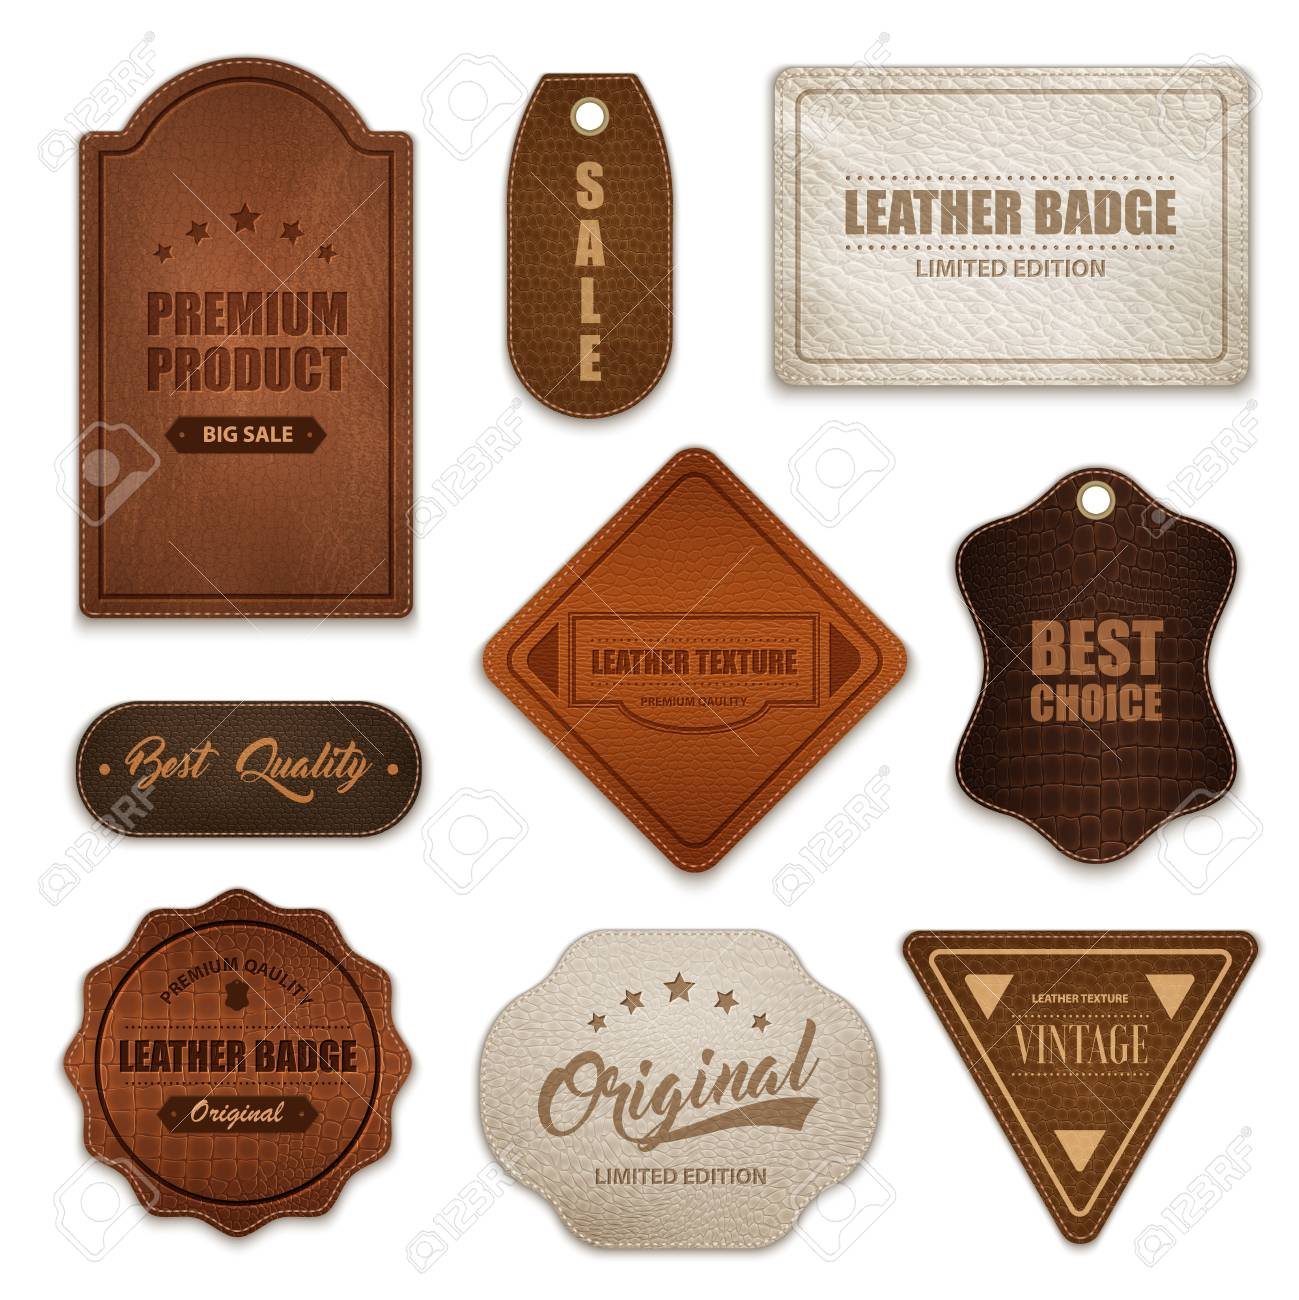 Realistic premium quality genuine leather labels badges tags collection various shapes color and texture isolated vector illustration - 94982302